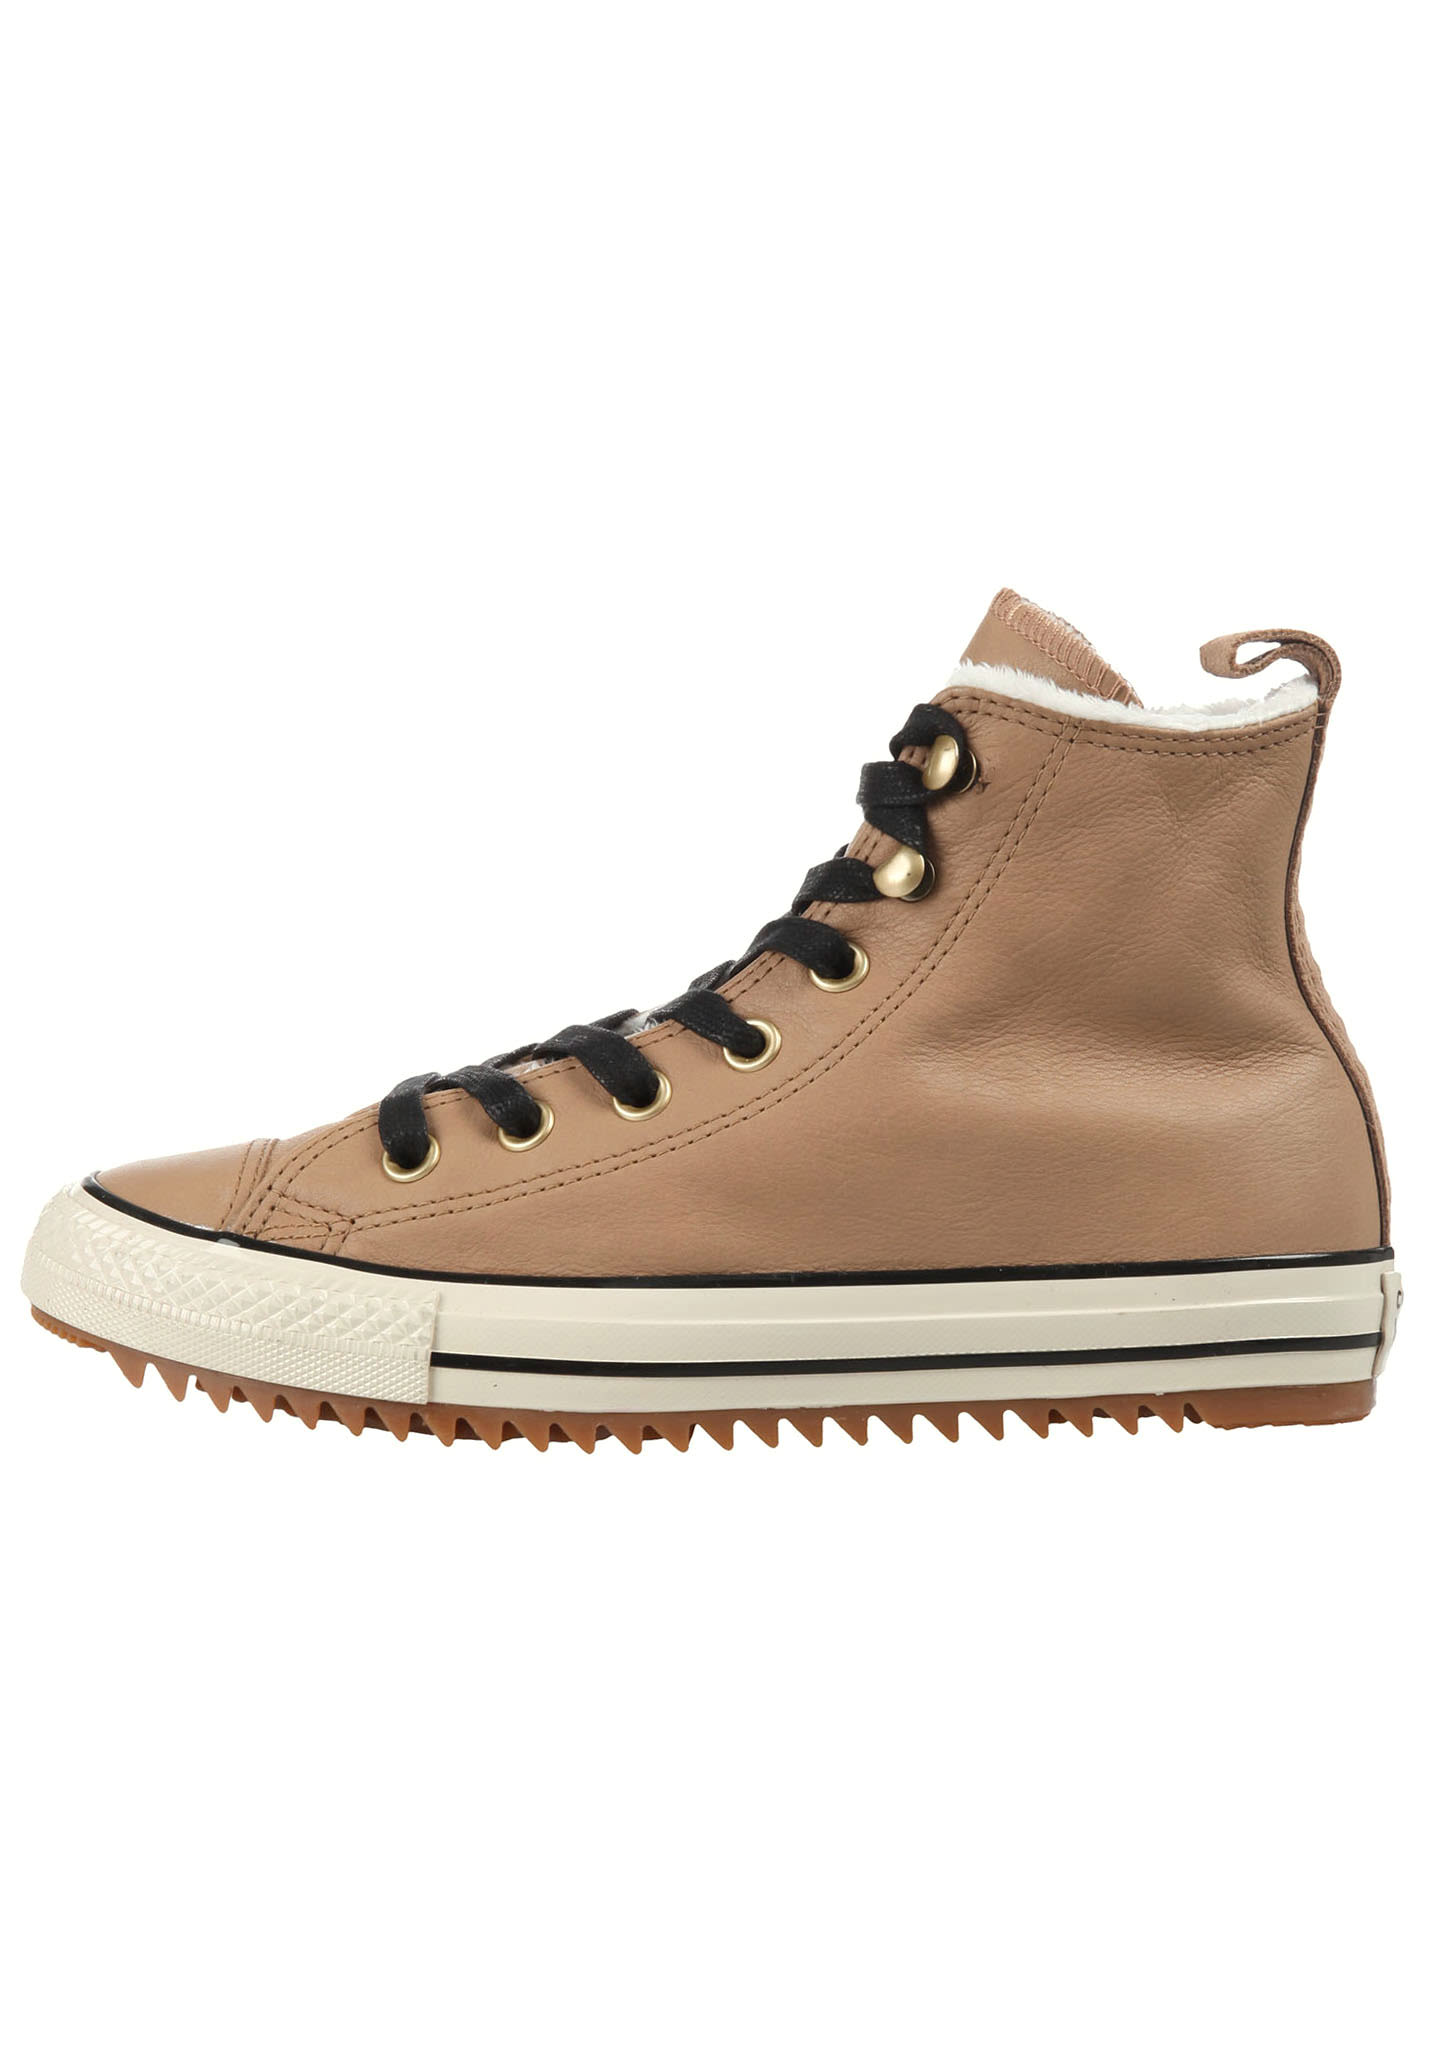 66fb4bb05f Converse Chuck Taylor All Star Hi - Sneakers for Women - Brown - Planet  Sports